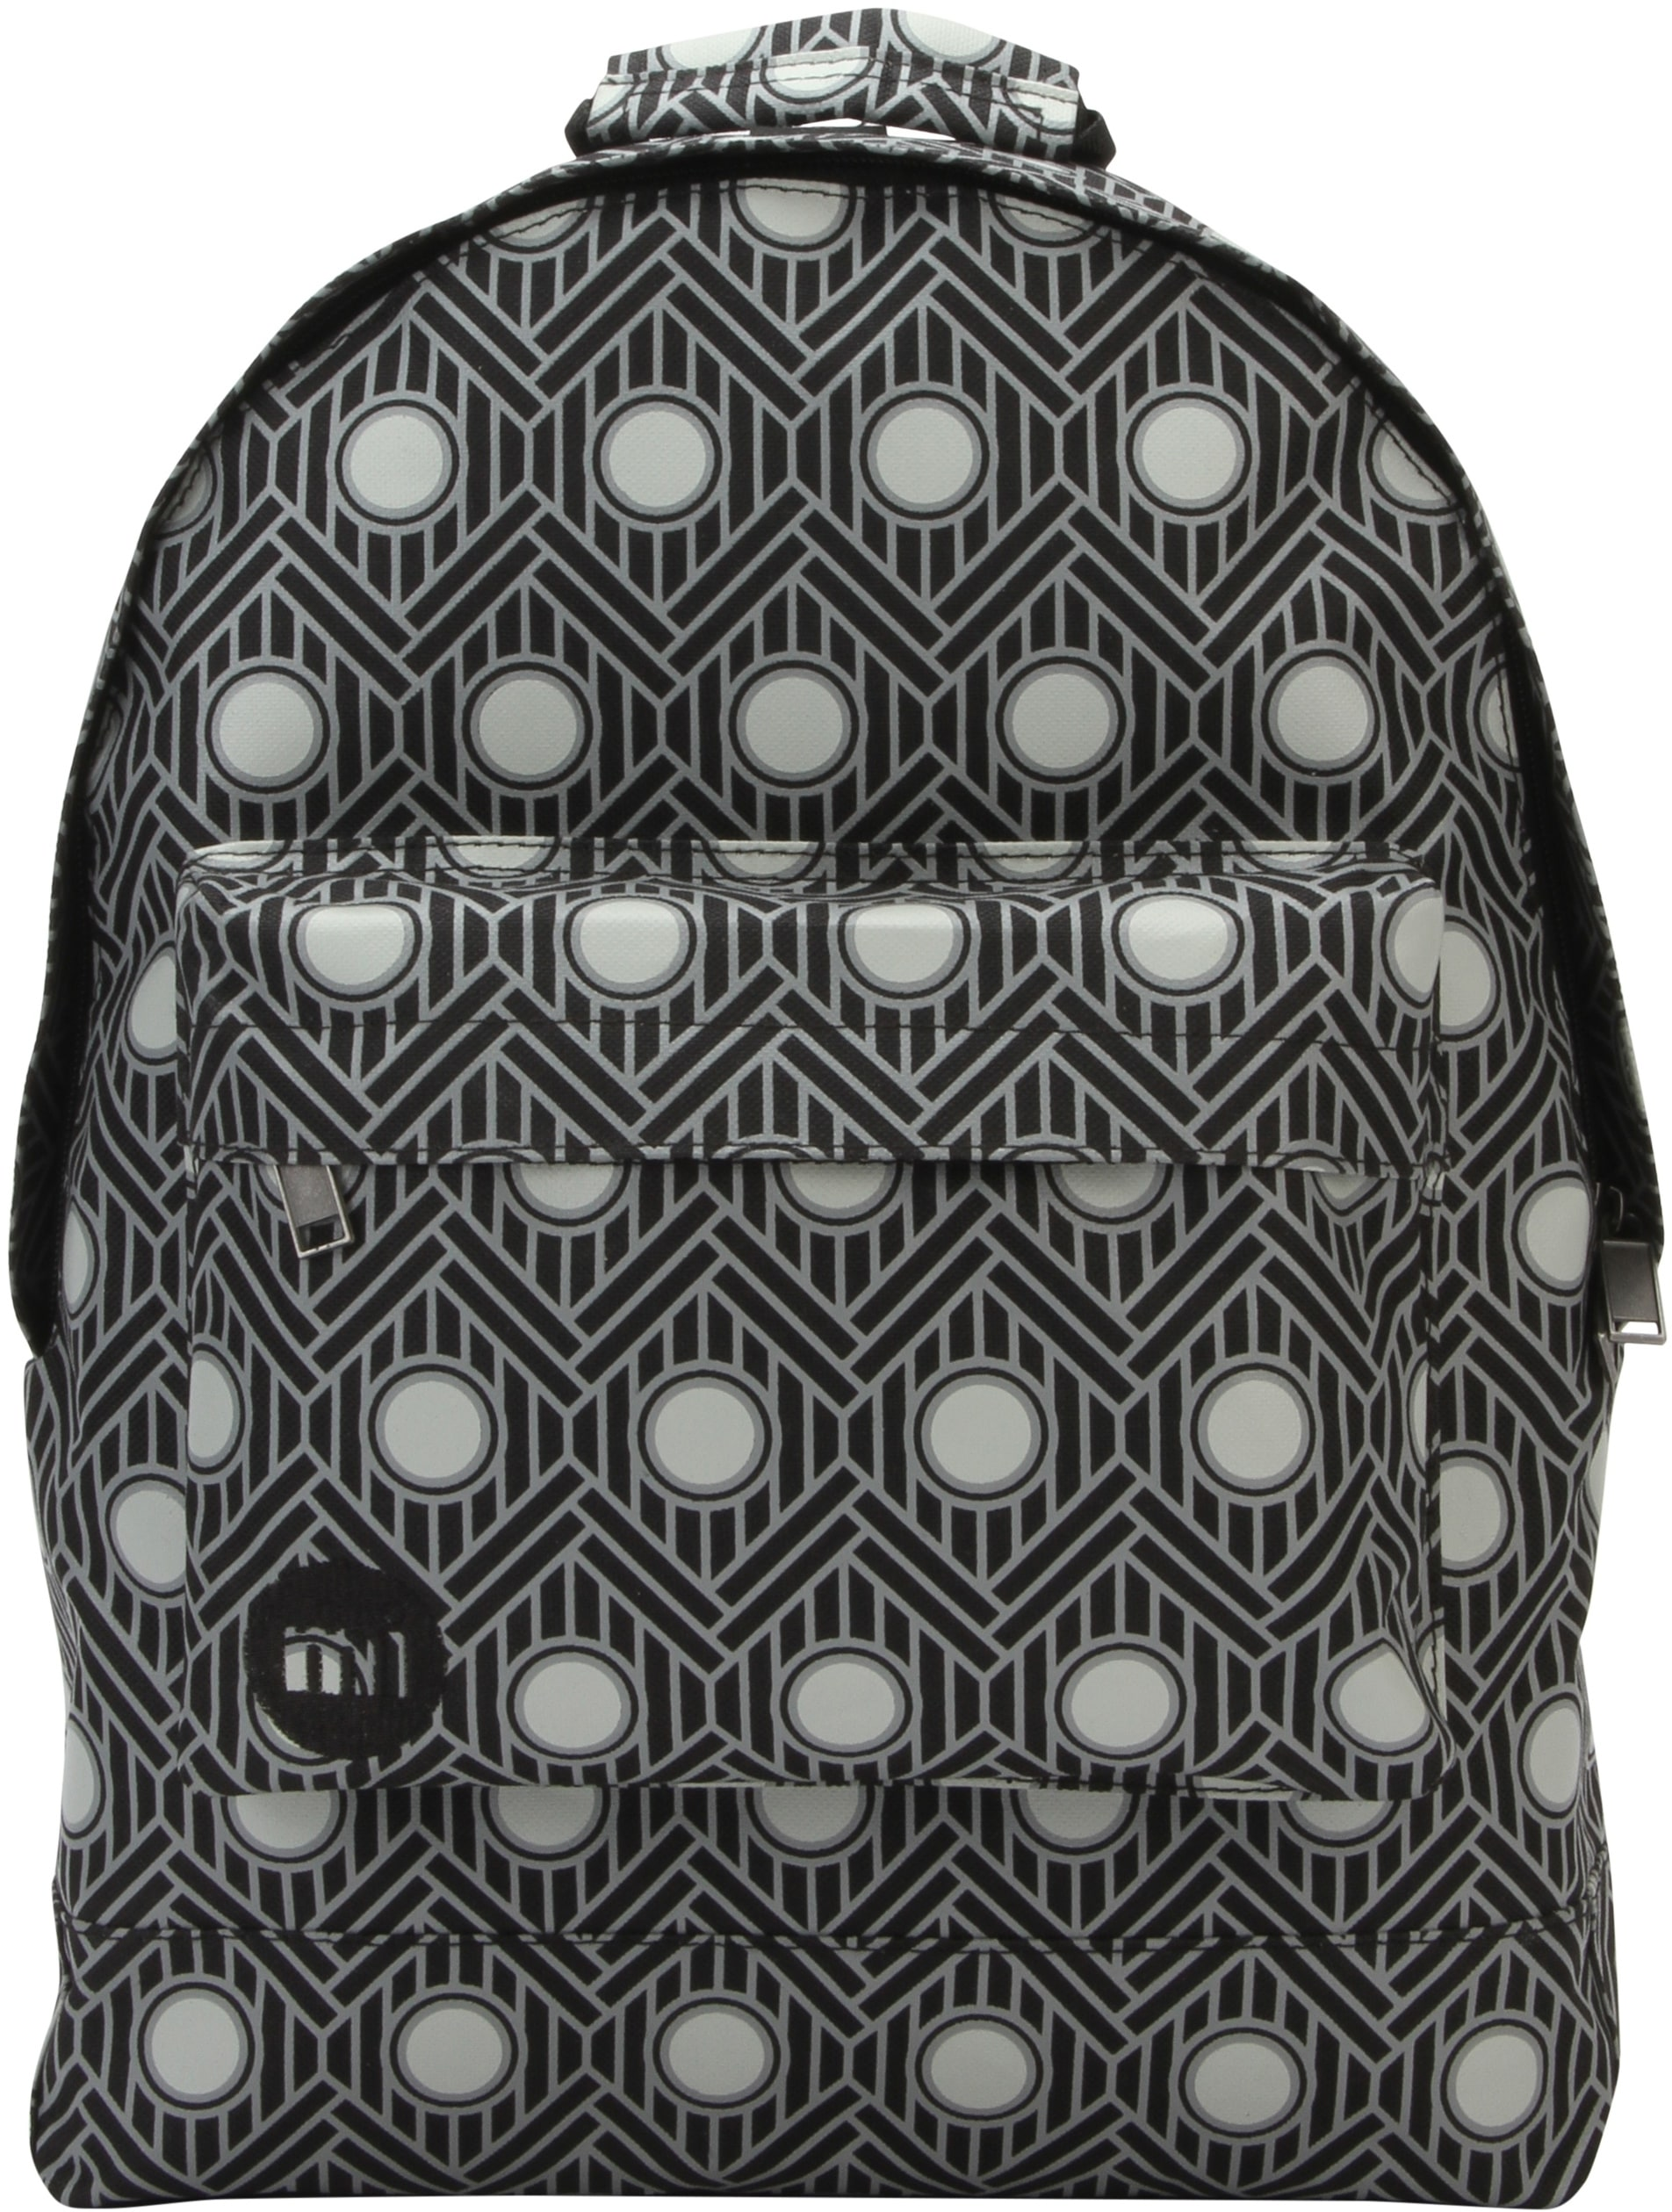 MiPac Chevron Backpack  Polka Black